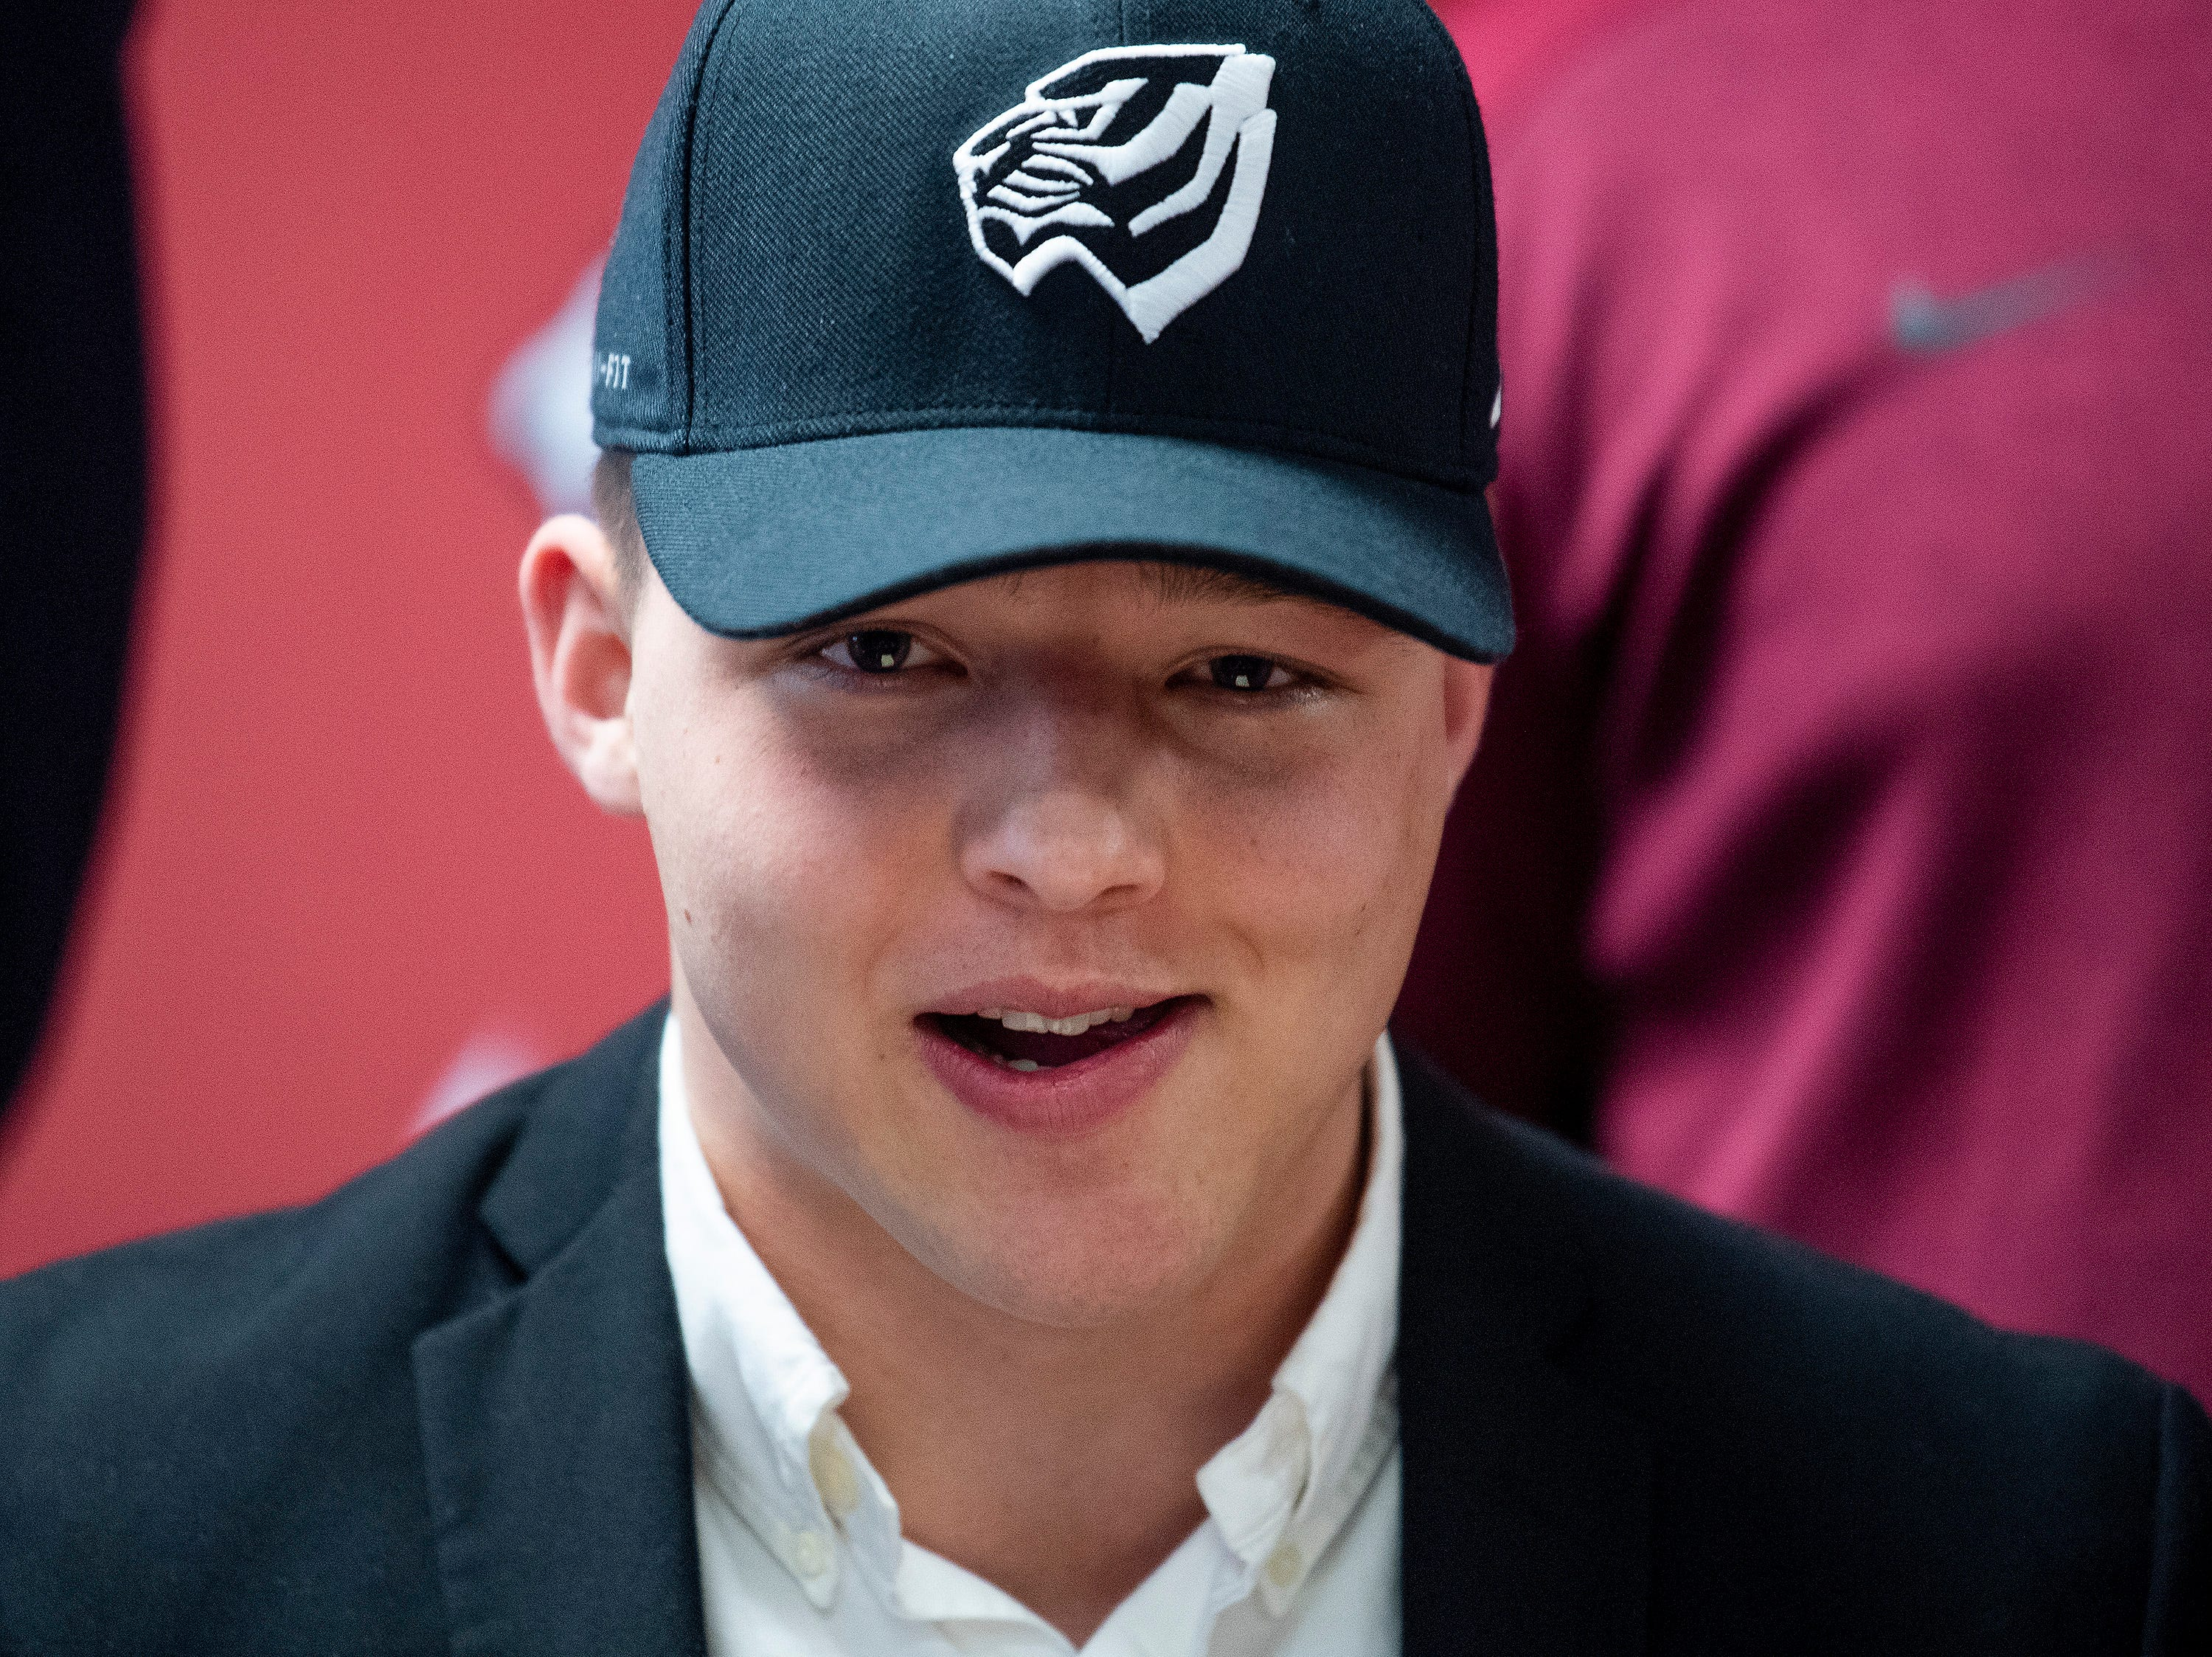 Prattville linebacker Zach Boerner signs to play at West Alabama during college football signing day at the school's campus in Pratttville, Ala., on Wednesday February 6, 2019.